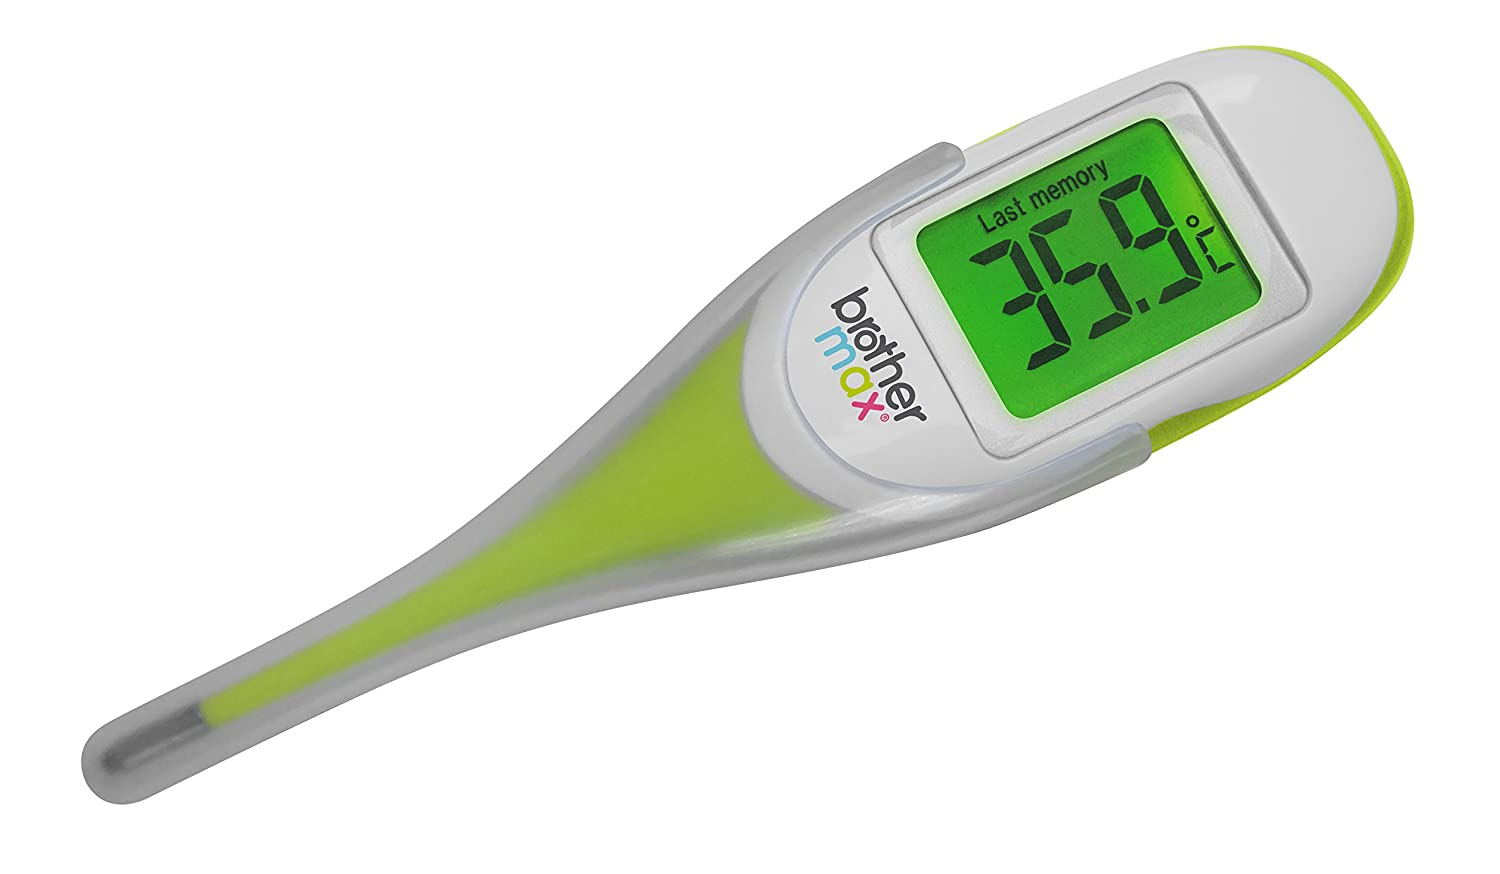 brother max® Digital Thermometer with Flexi Tip Accurate reading to 0.1Deg in as little as 8 seconds. Ideal for Oral, Armpit, Axillary and Basal Temperature Measurement 49852